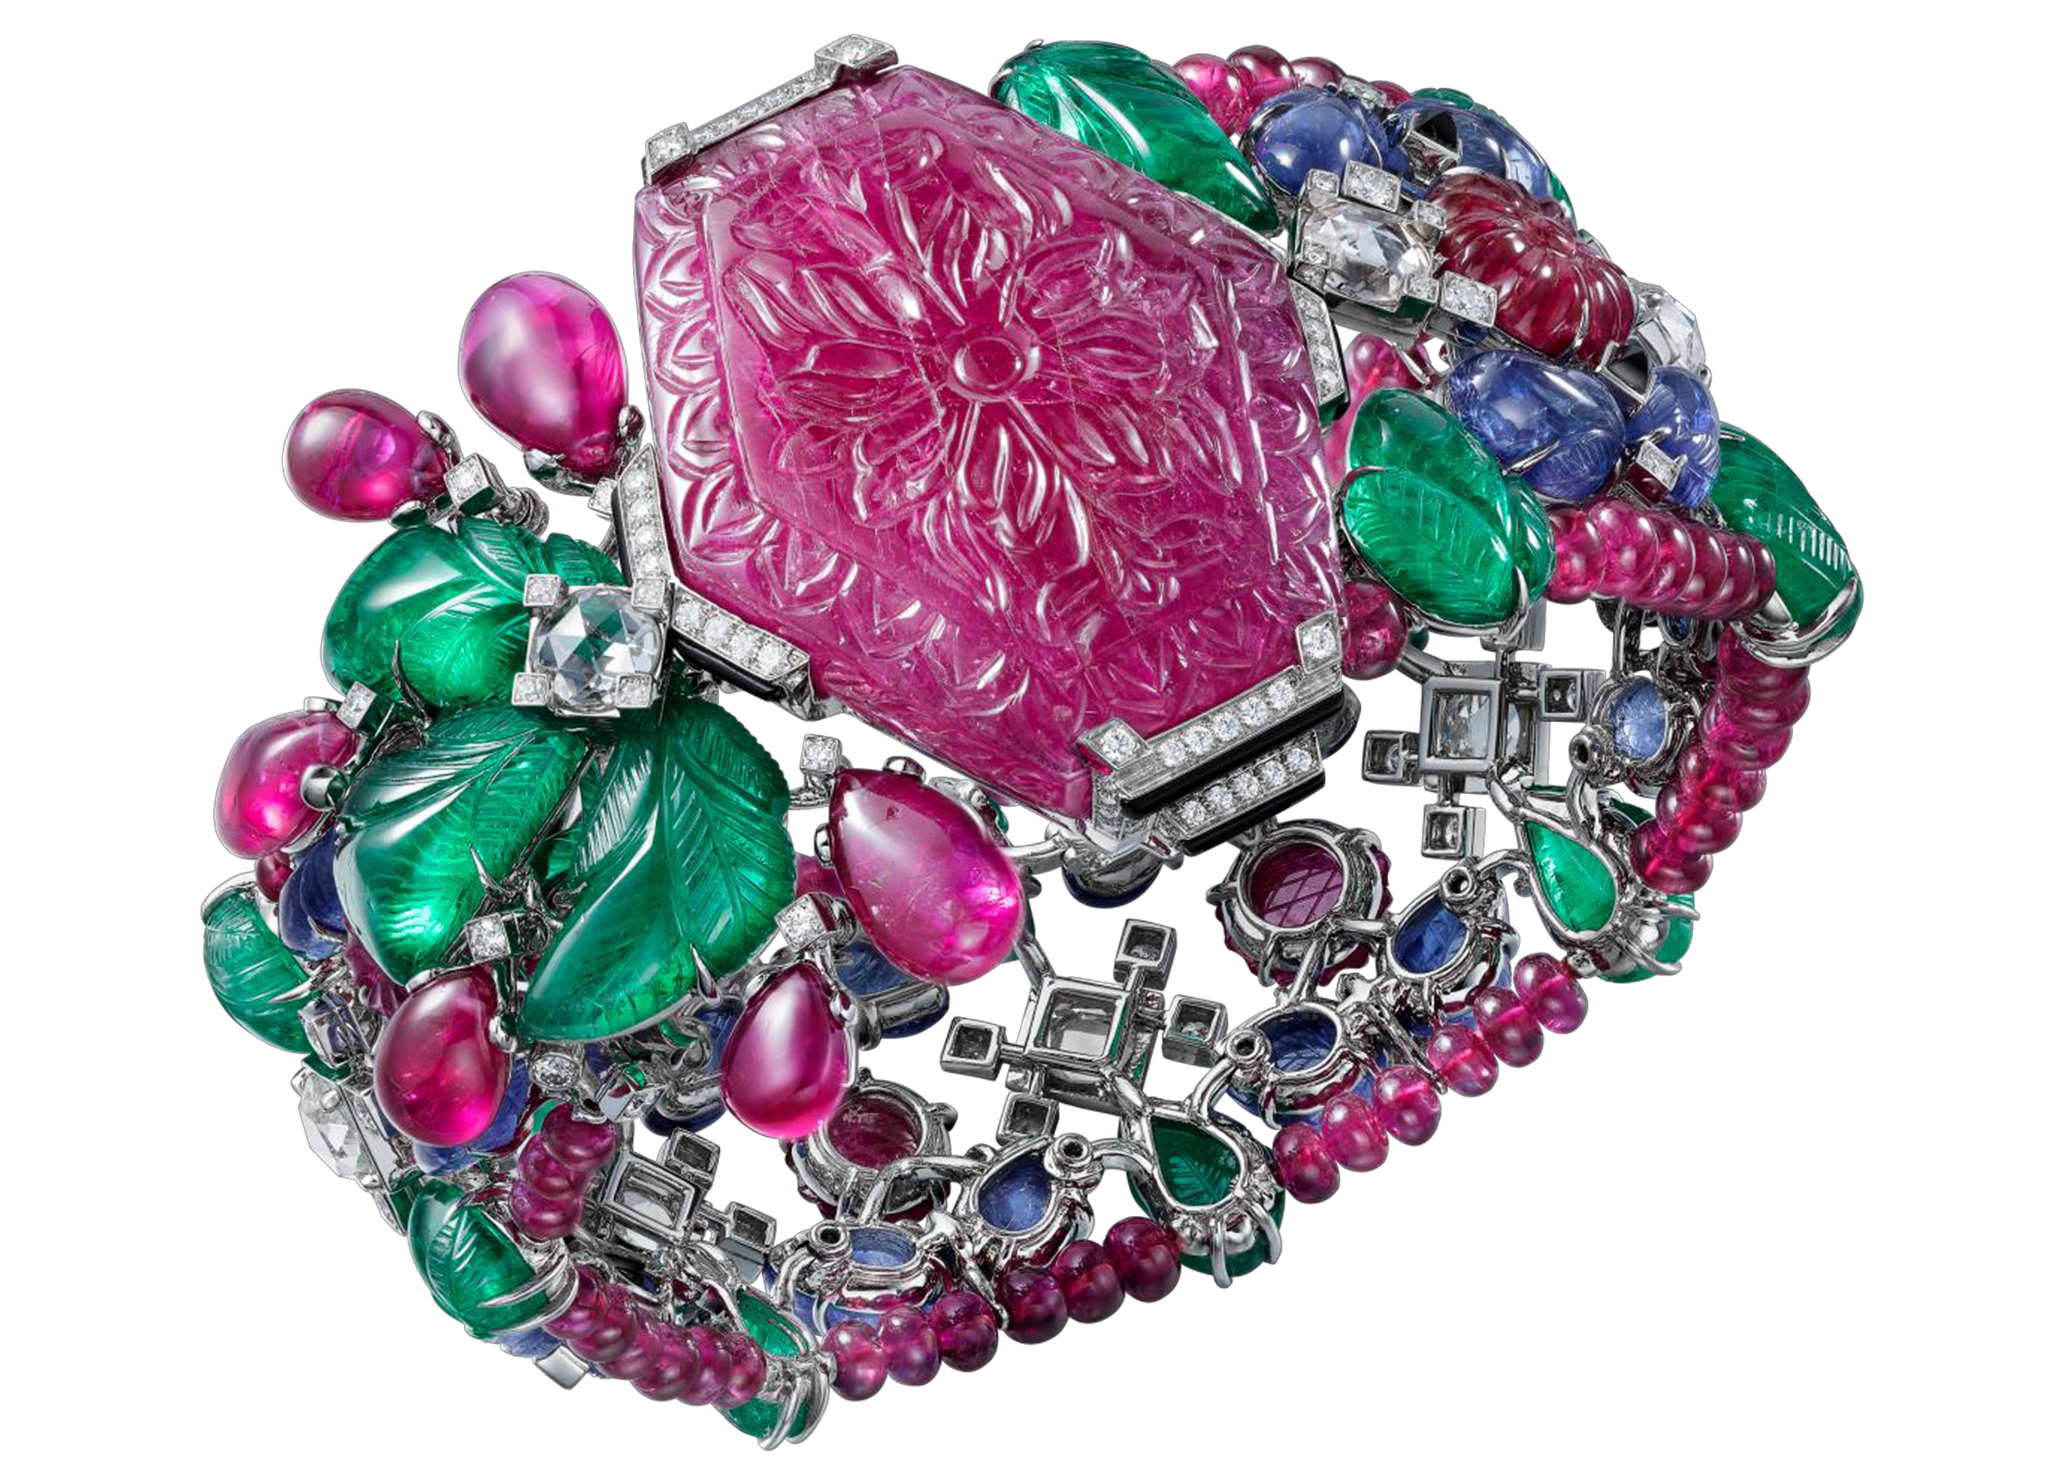 Amazing carved ruby: Puducherry bracelet with a 99.88 carats carved ruby.